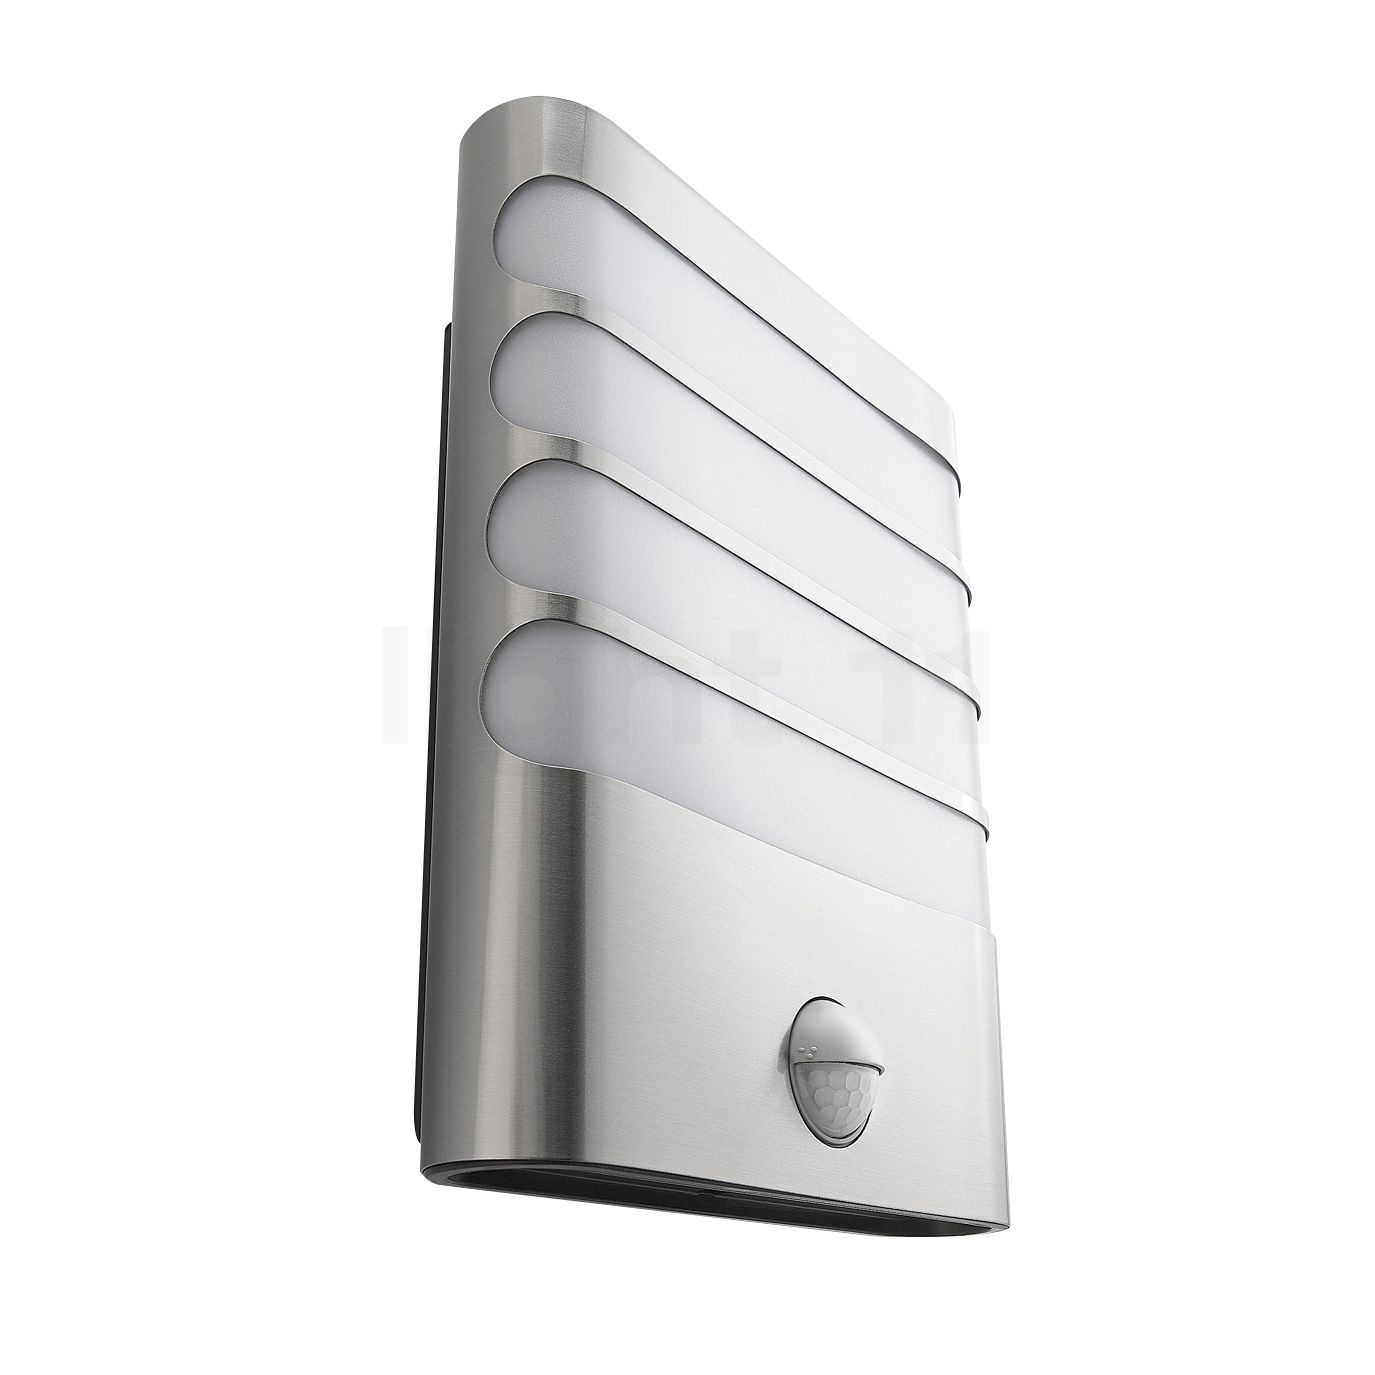 Philips Mygarden Raccoon 17274 Wall Light With Motion Detector Led In Led Outdoor Raccoon Wall Lights With Motion Detector (View 3 of 15)